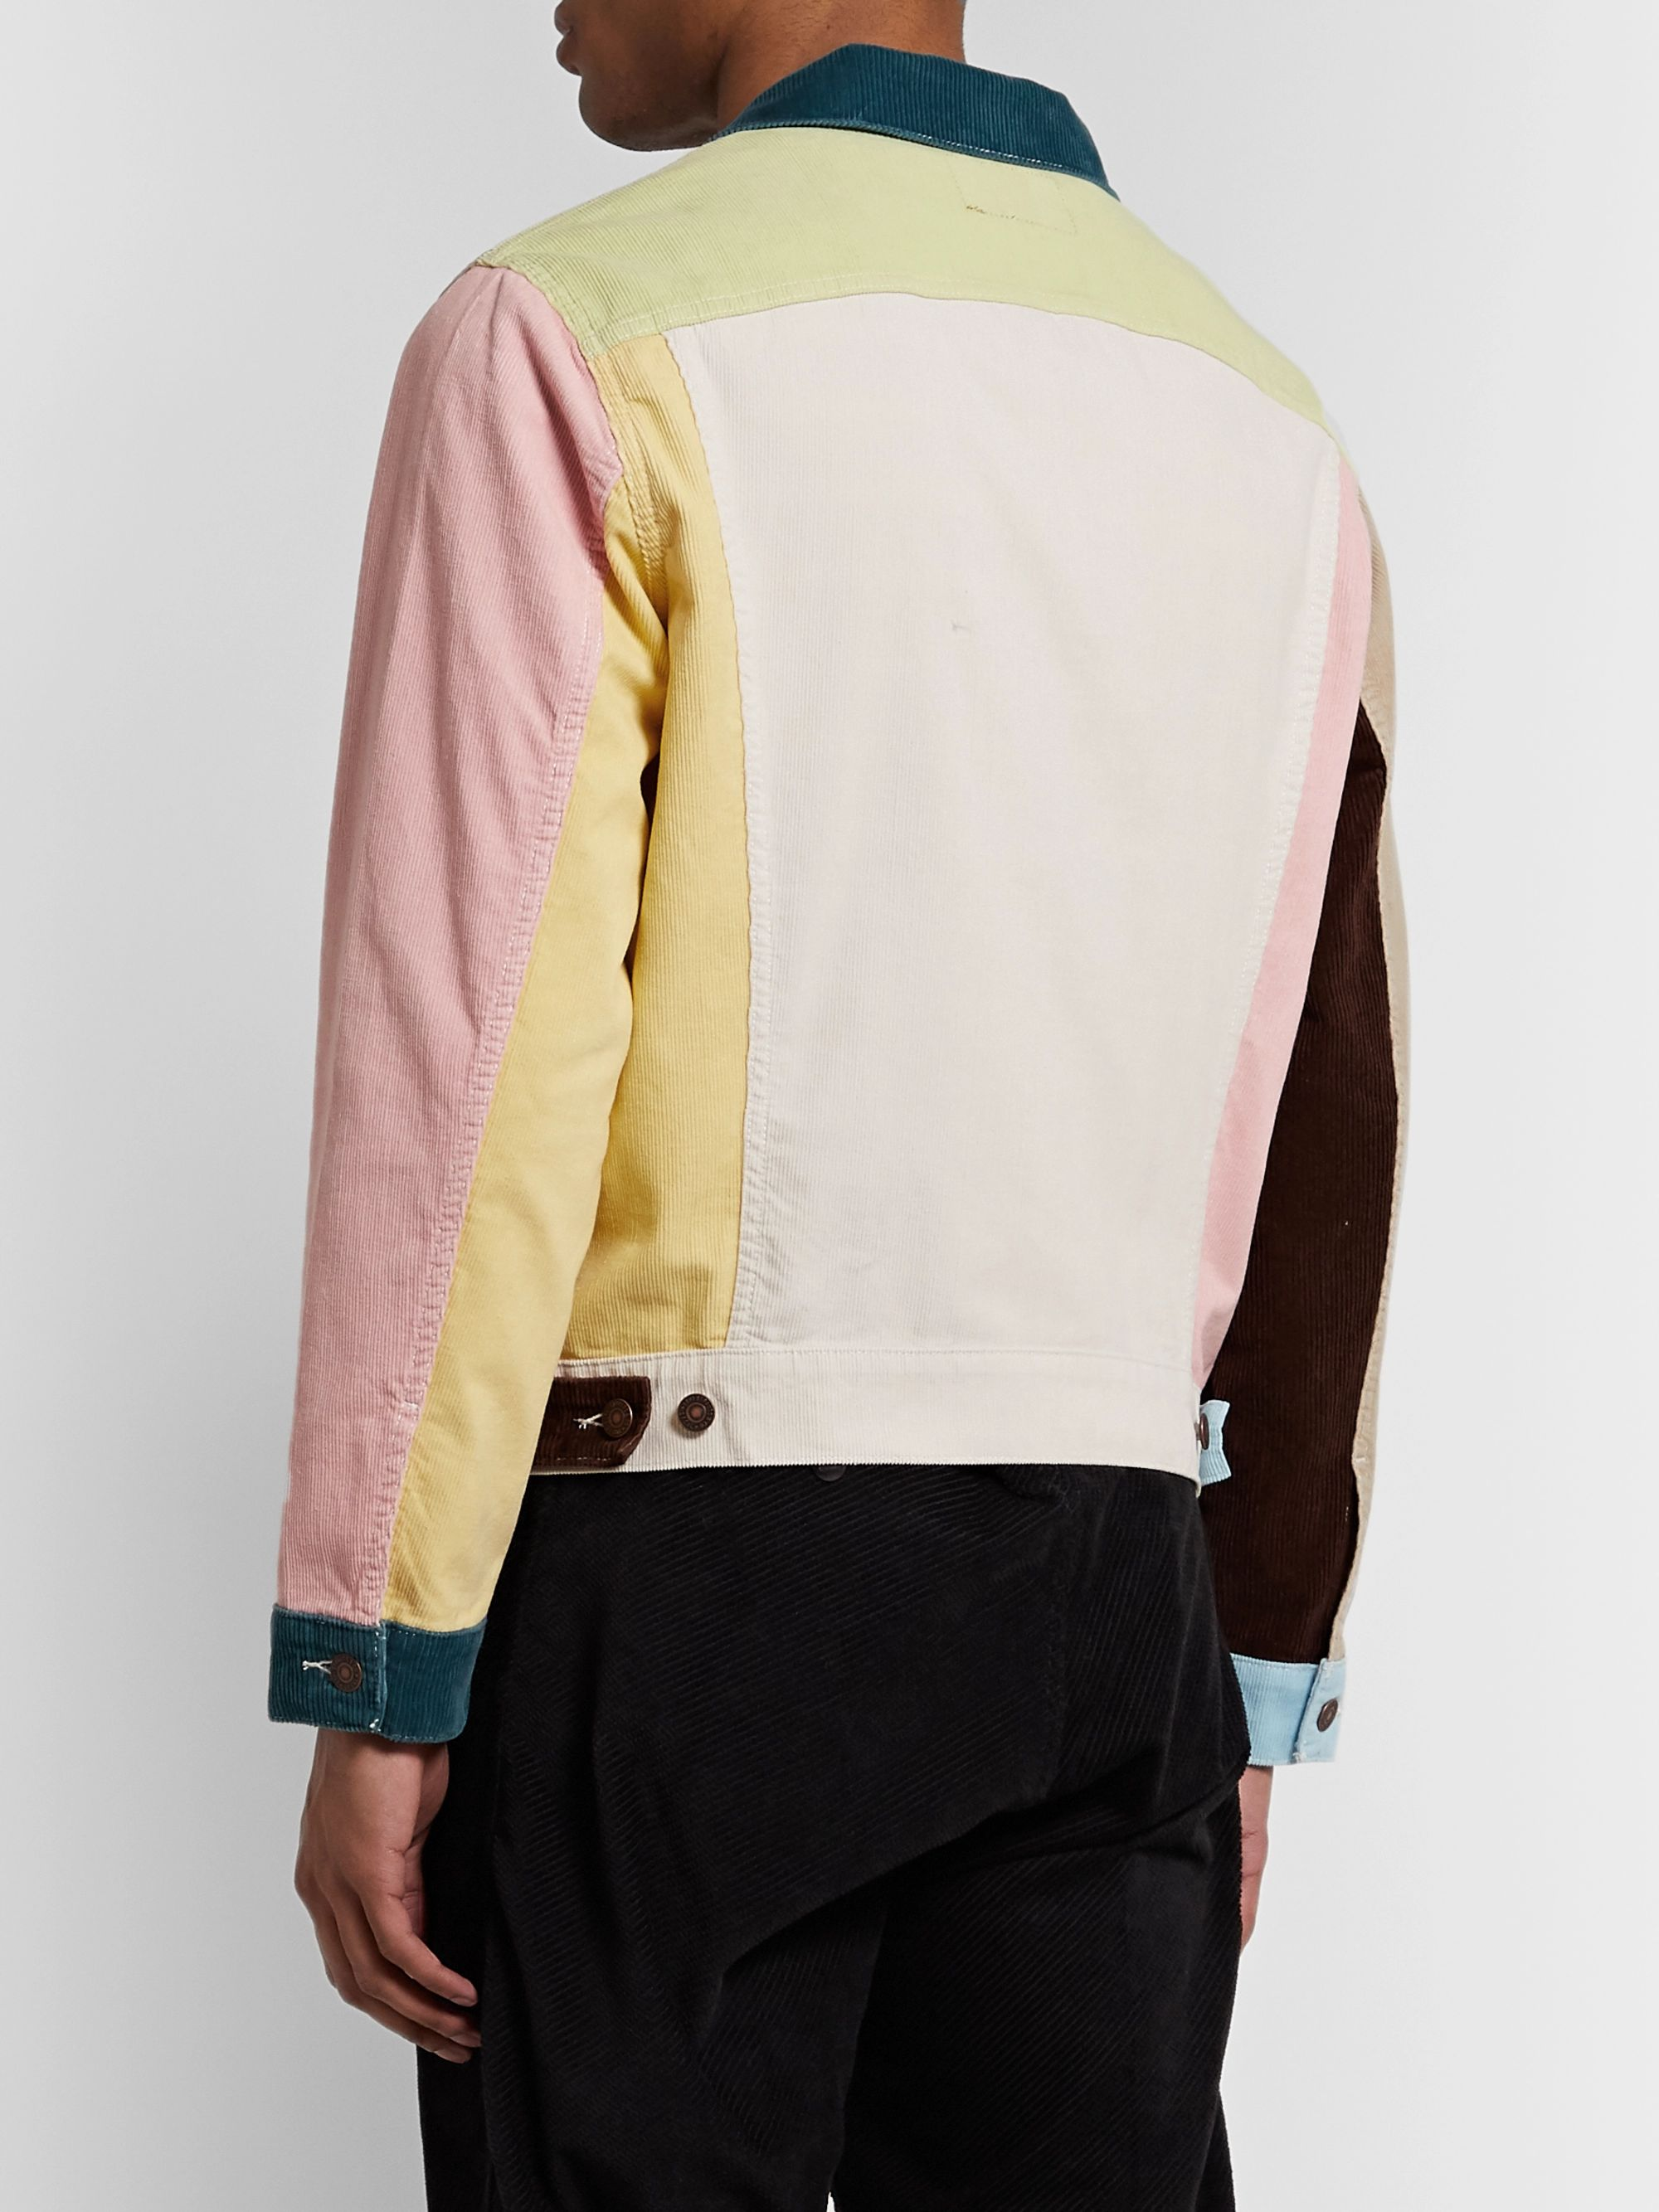 Levi's Vintage Clothing Soap Box Colour-Block Cotton-Corduroy Trucker Jacket